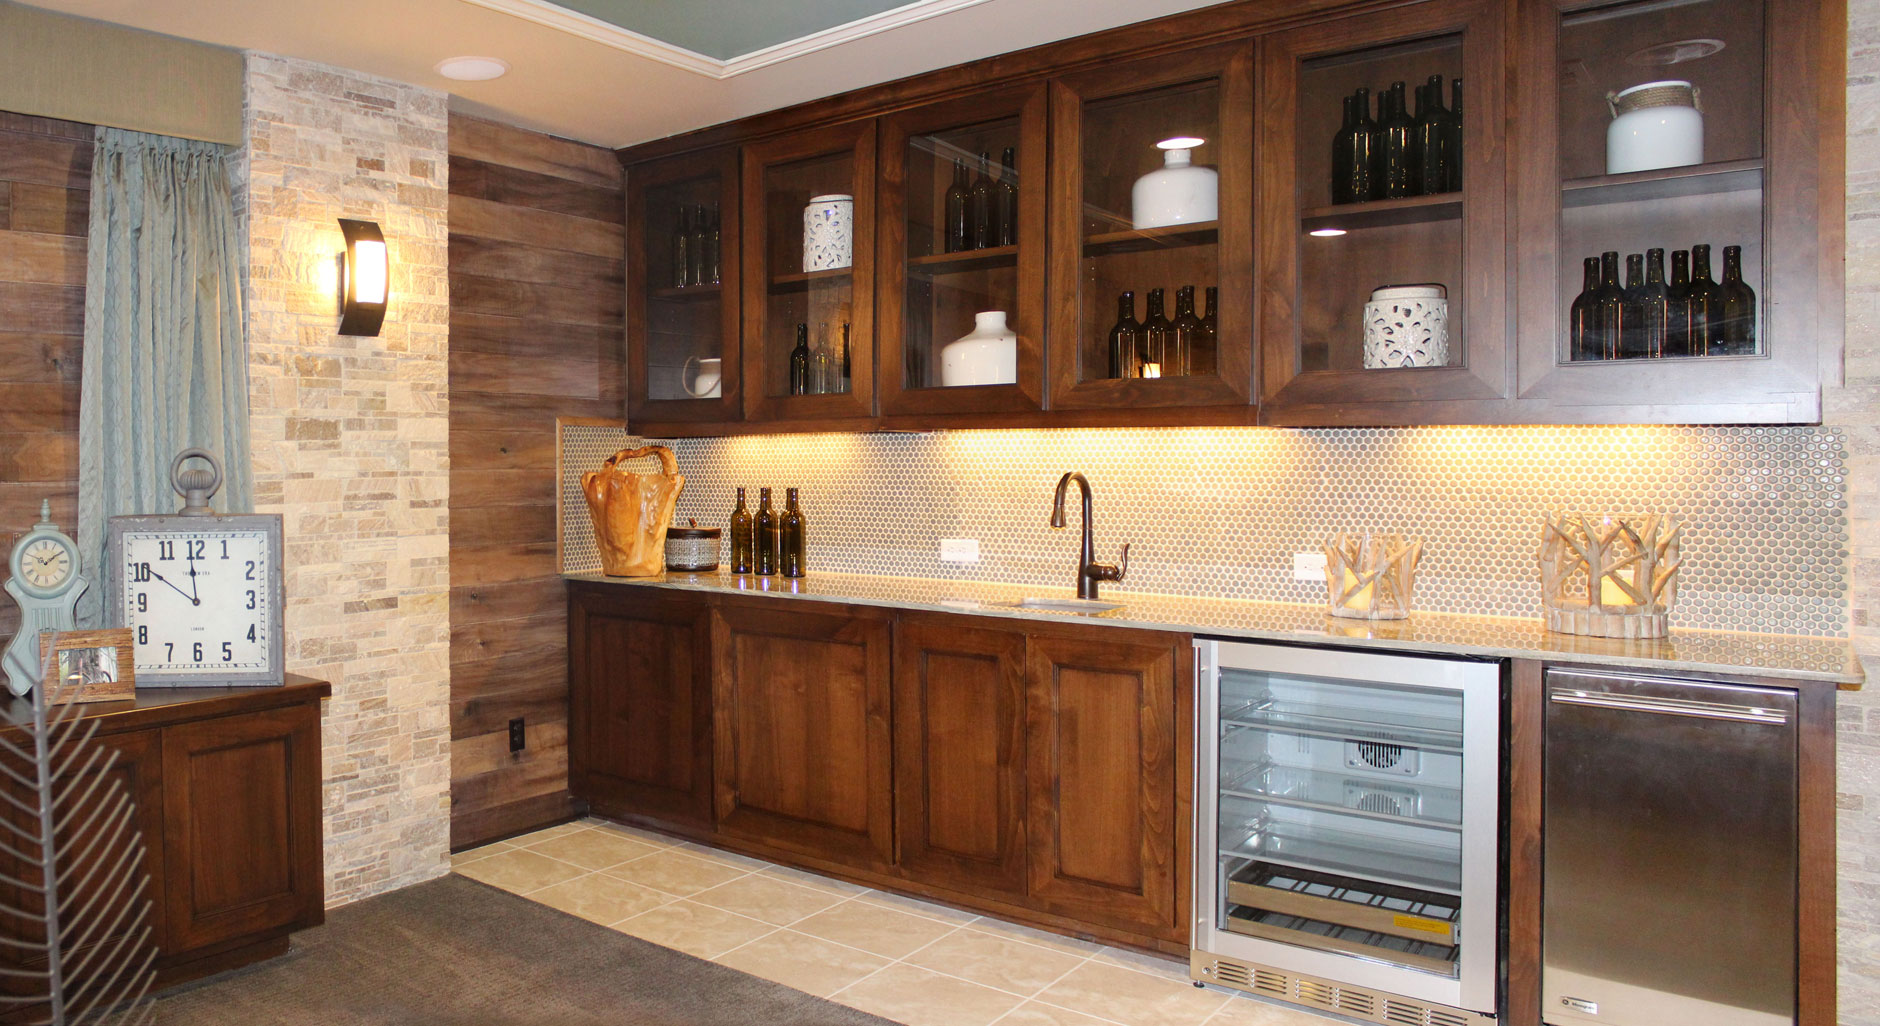 Wet bar photos burrows cabinets central texas builder direct custom cabinets - Wet bar cabinets ...